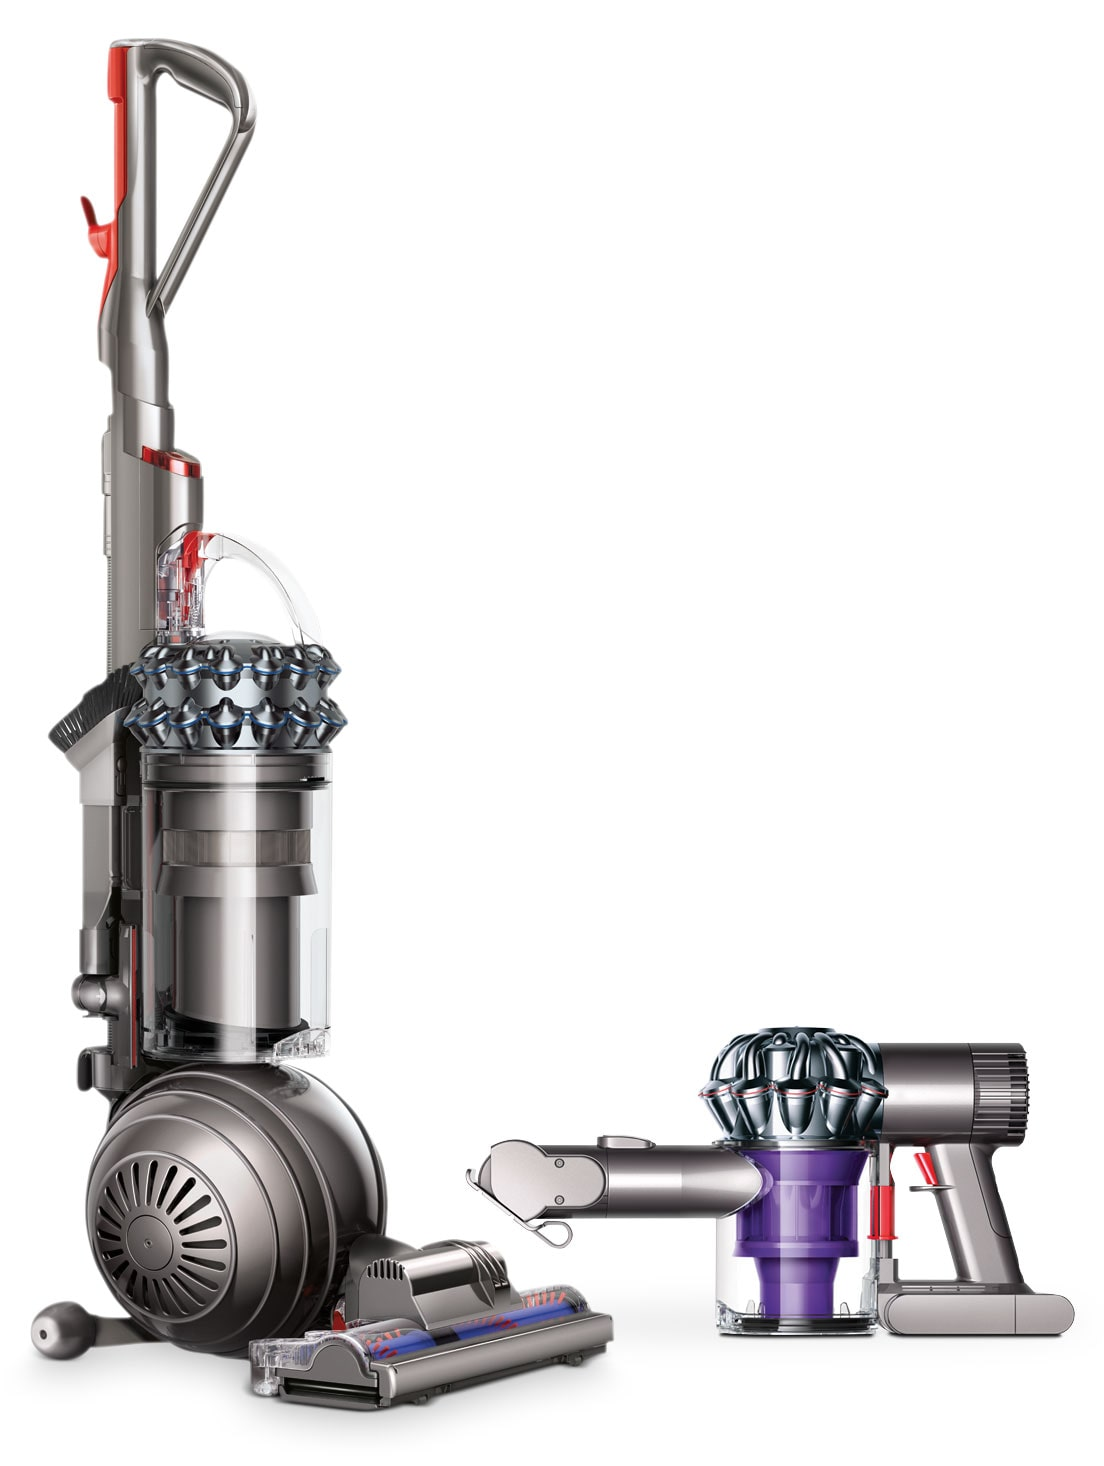 Dyson V6 Trigger Handheld Vacuum and Dyson DC77 Multi-Floor Upright Ball Vacuums